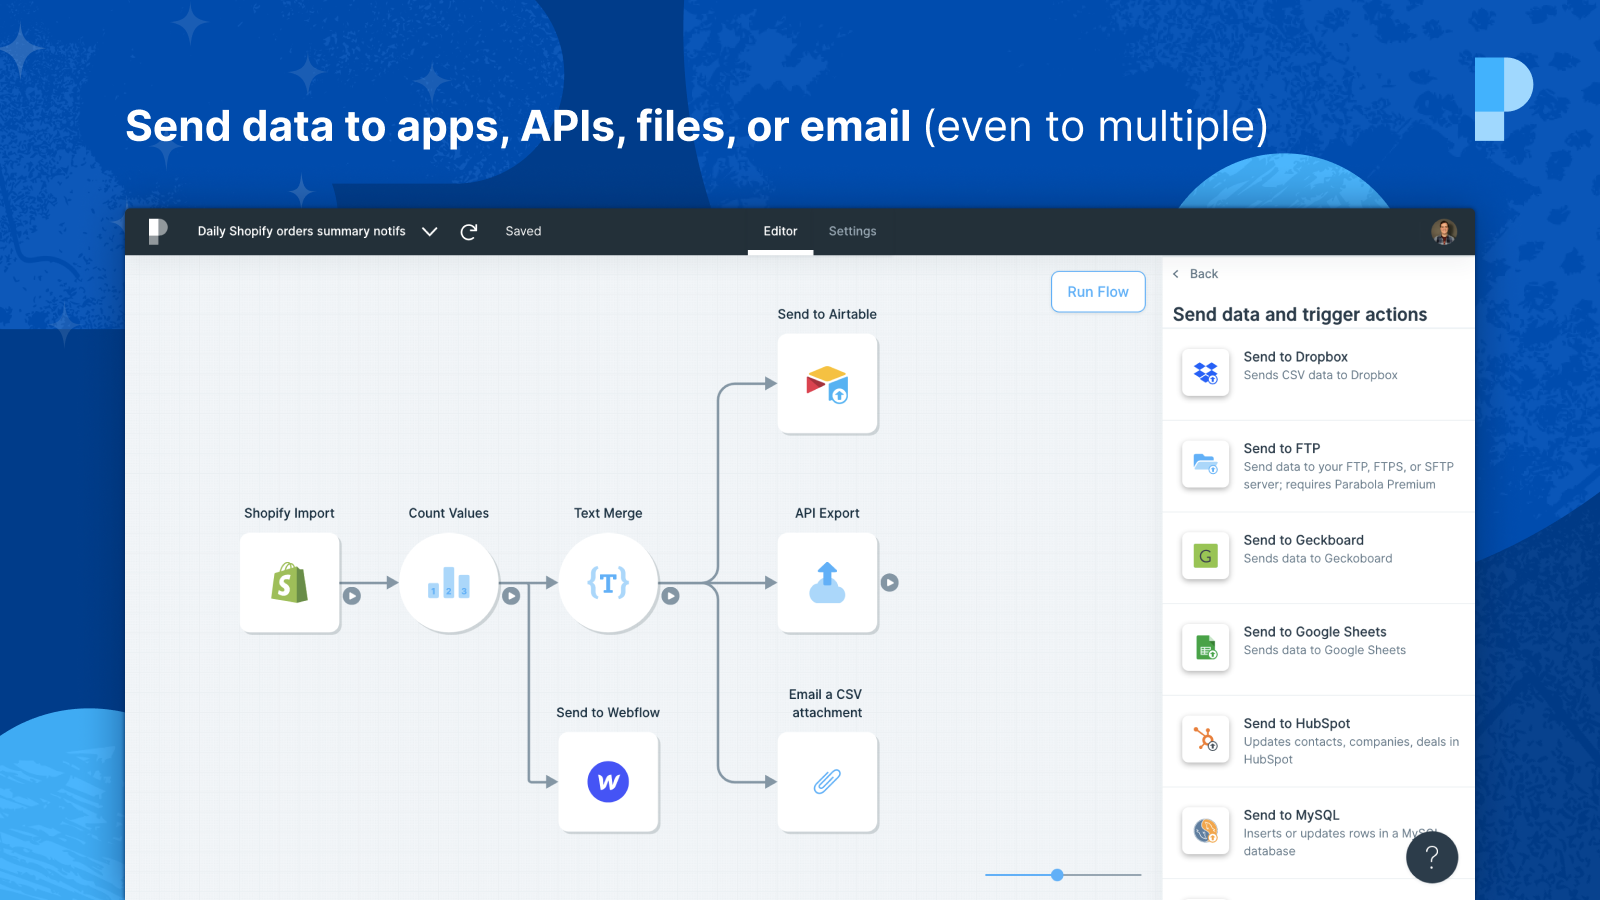 Send data to apps, APIs, files, or email (even to multiple)